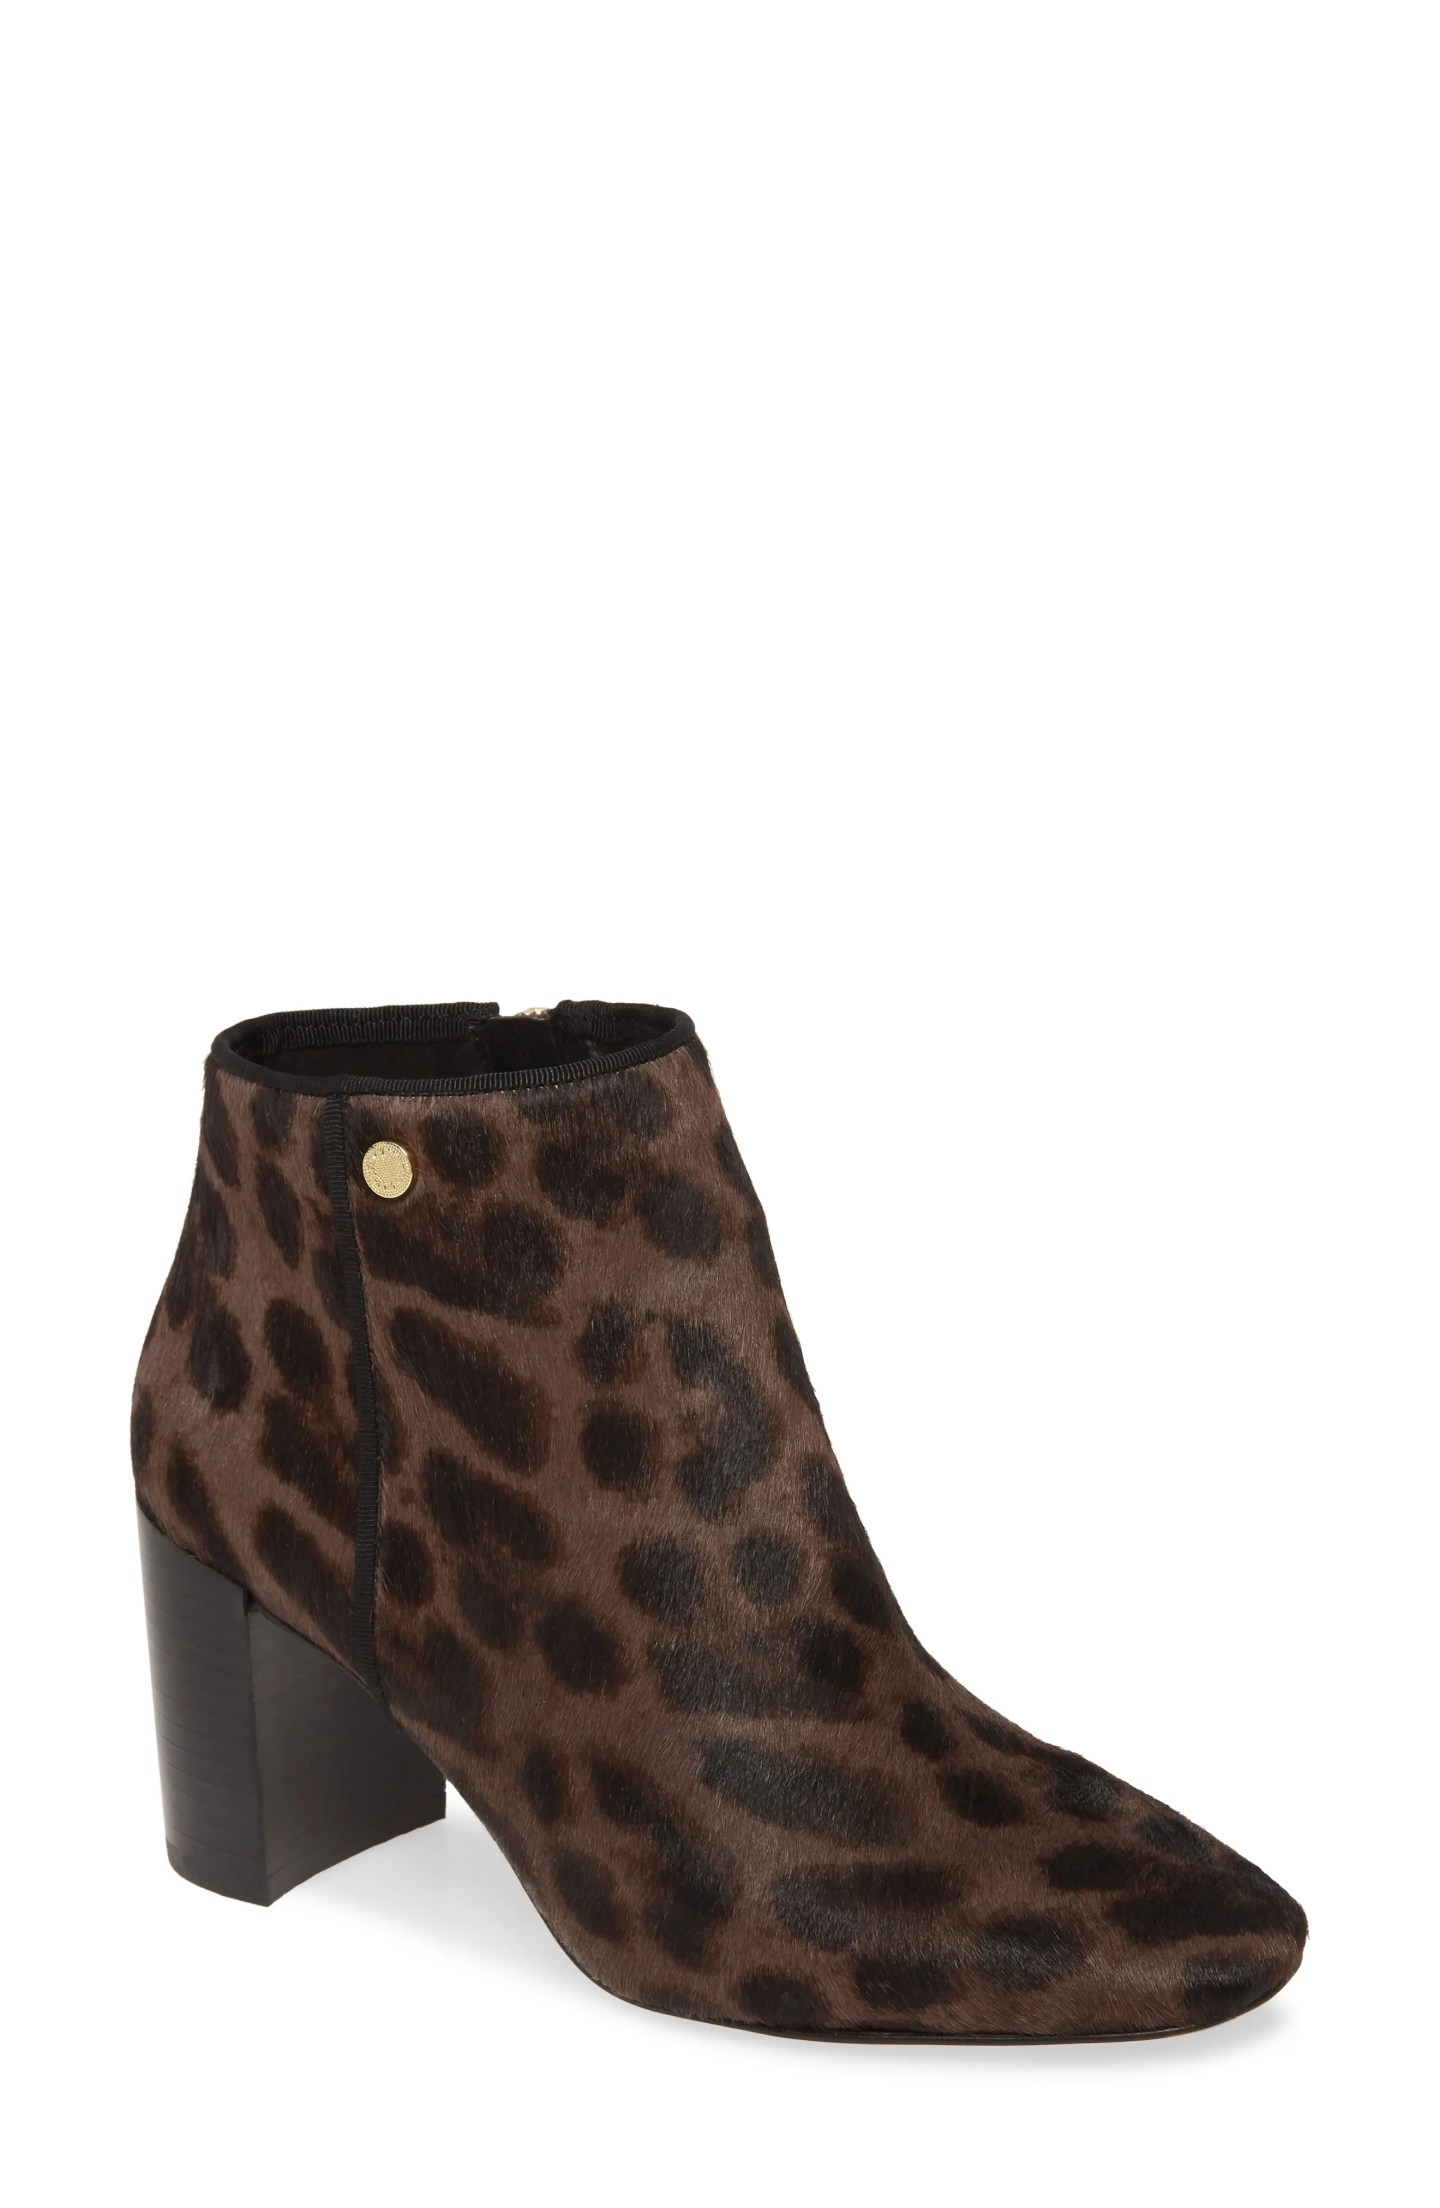 KARL LAGERFELD PARIS Ramma Genuine Calf Hair Boot, Main, color, CHOCOLATE/ BLACK CALF HAIR